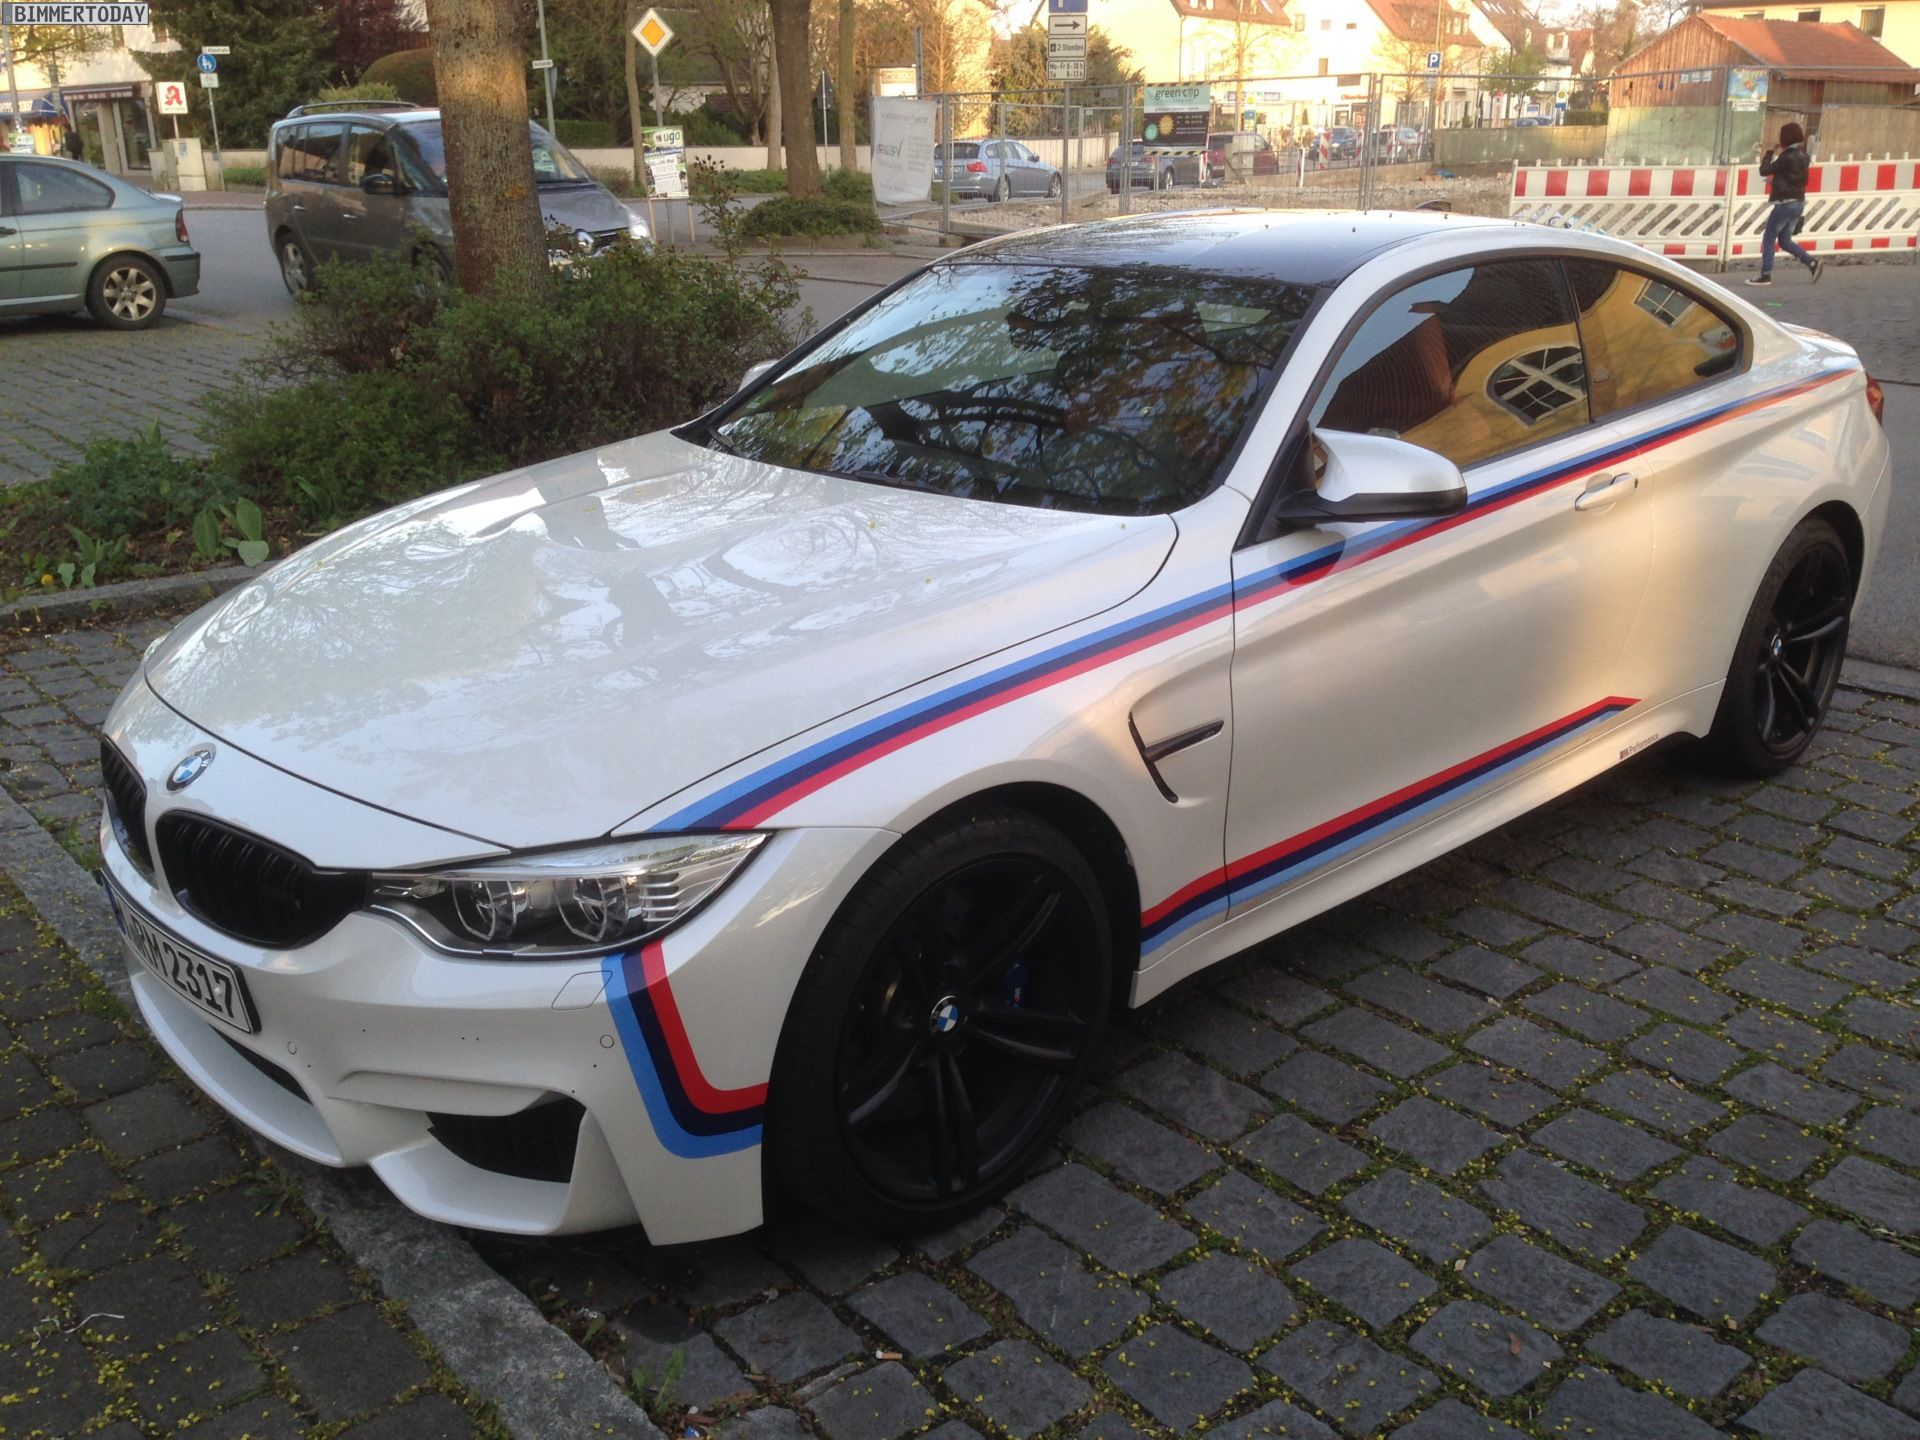 Bmw M4 Coupe With M Stripes Spotted Bmw M4 Coupé Bmw M4 Dream Cars Bmw